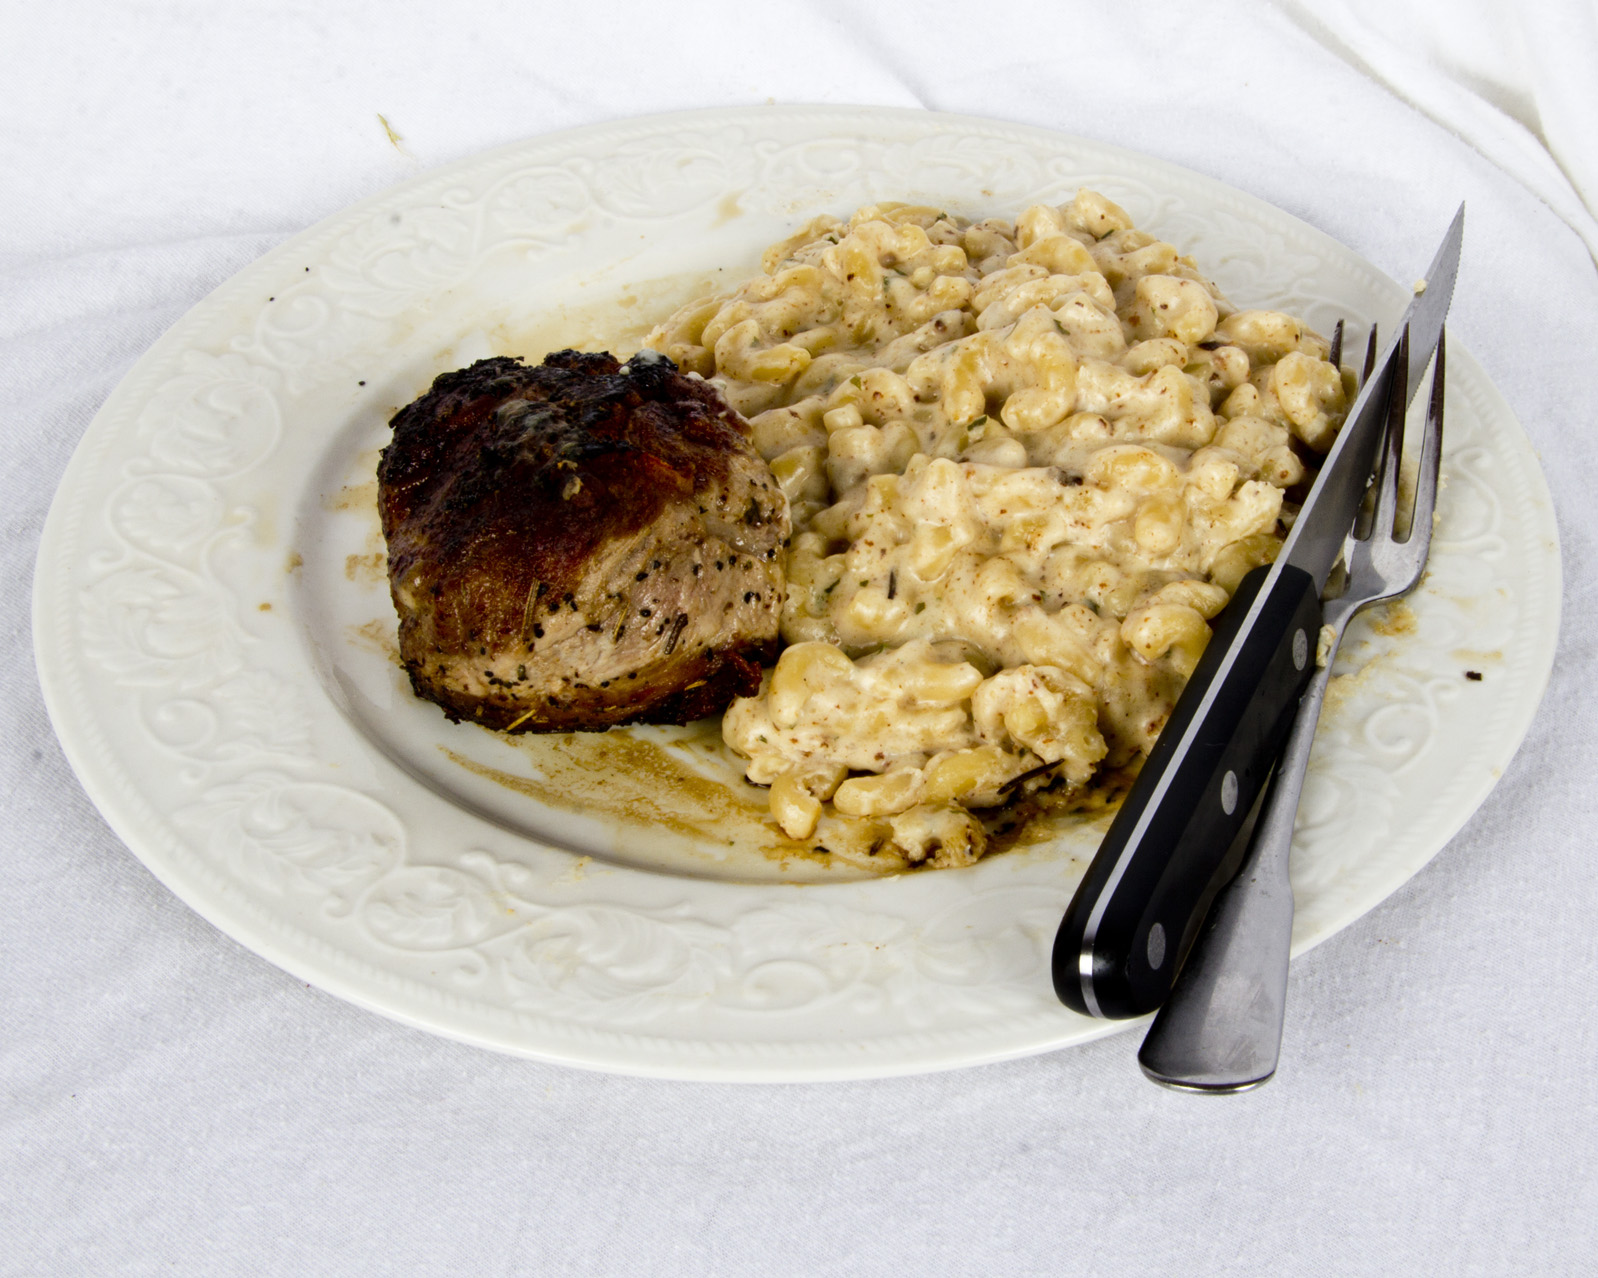 Bacon-fried pork chops with Parmesan macaroni and cheese